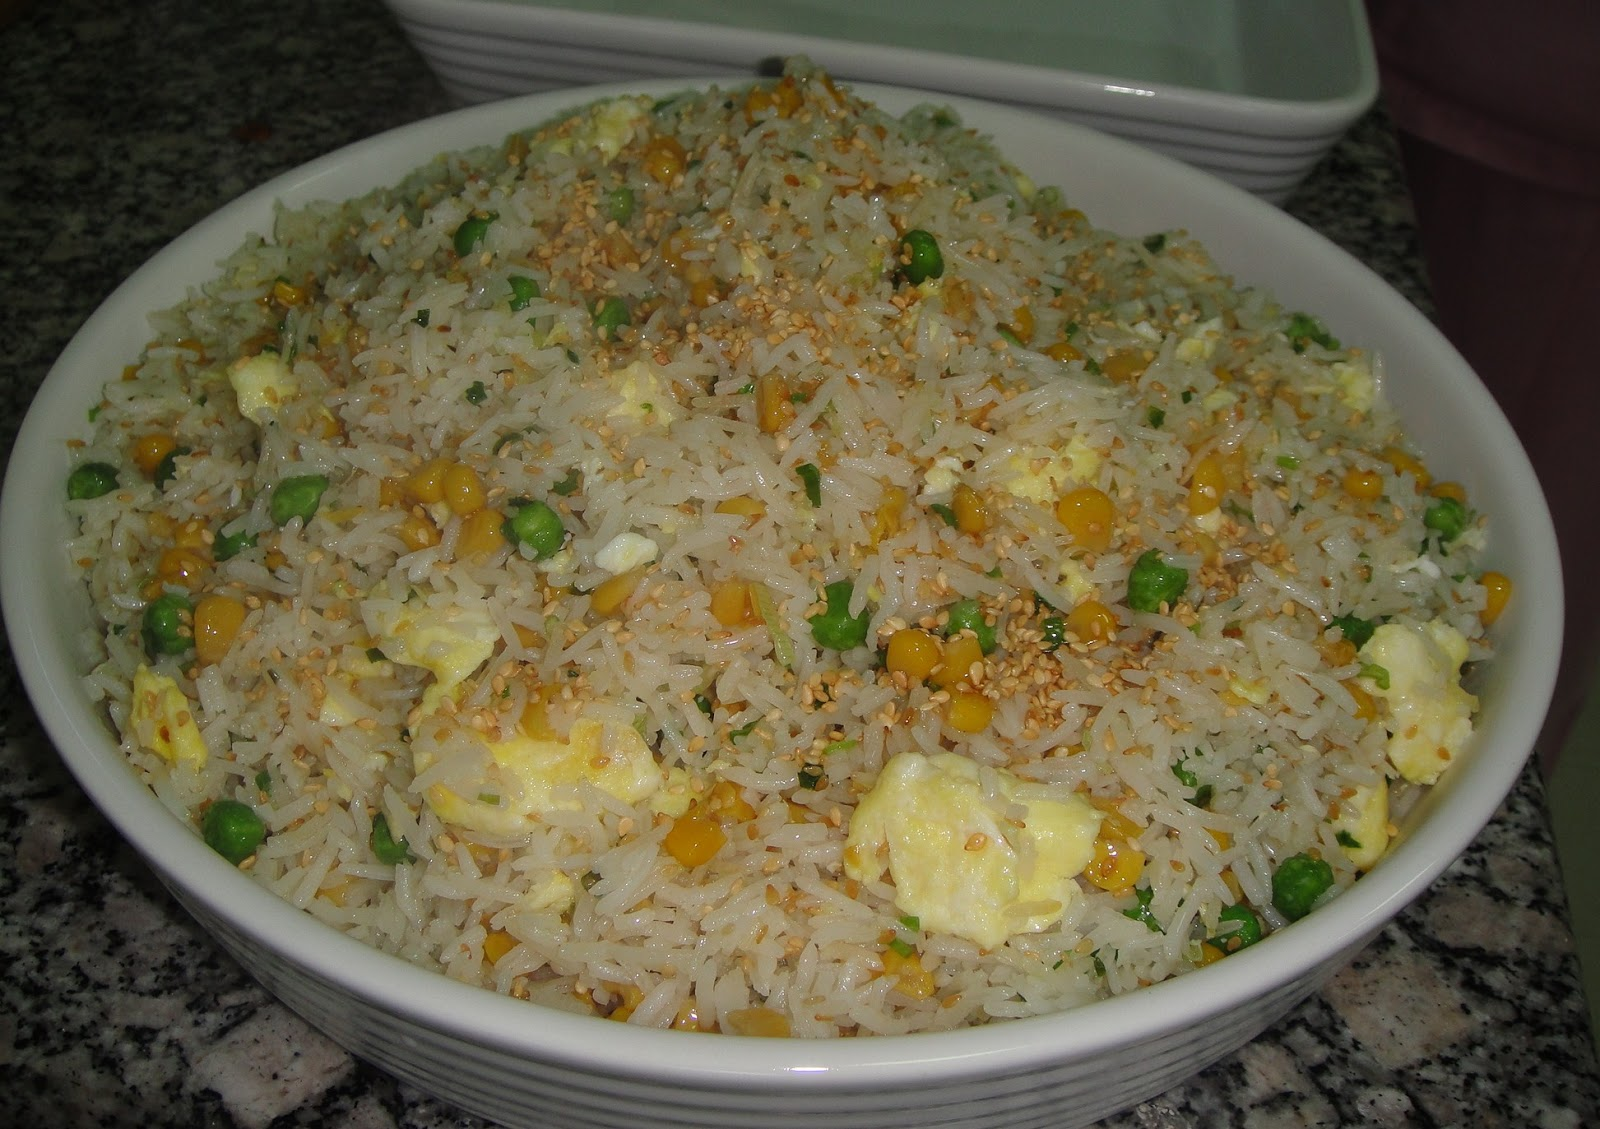 ... fried rice bacon and egg fried rice quinoa fried rice spam fried rice